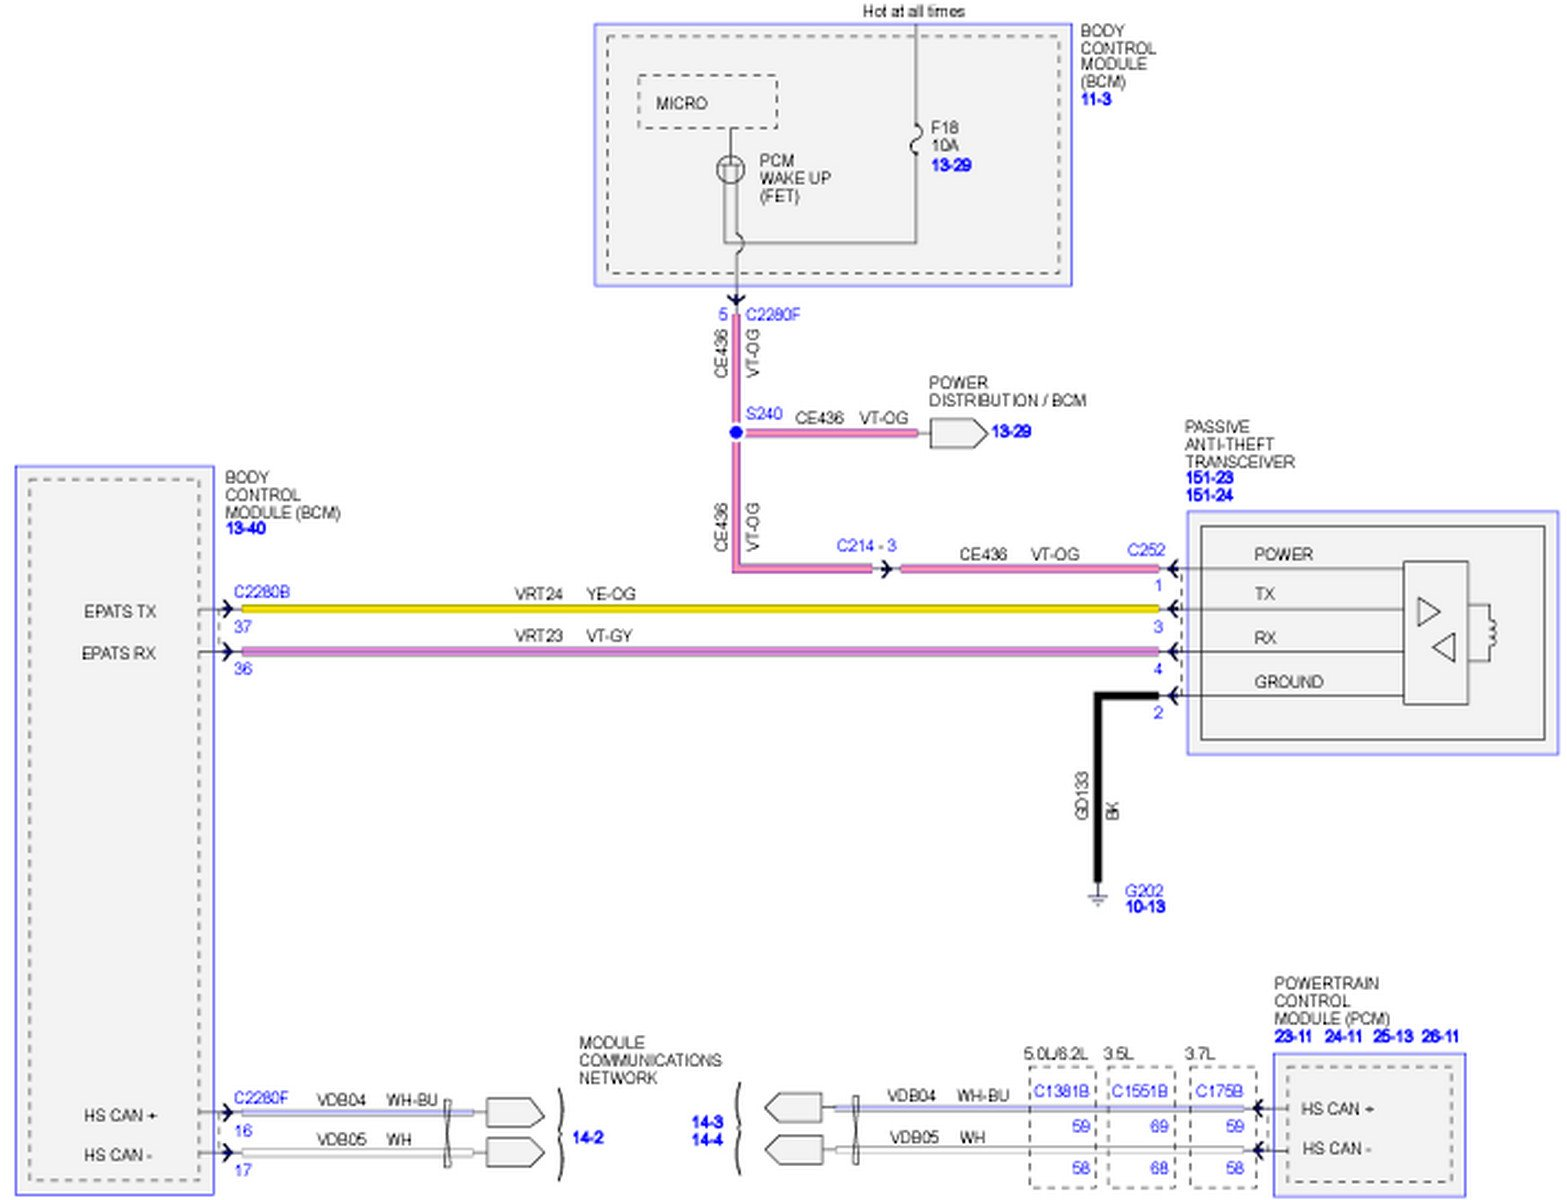 I Need A Pcm Wiring Schematic For 2011 F150 With 62 Engine Am Ford Wire Harness Plugs Graphic